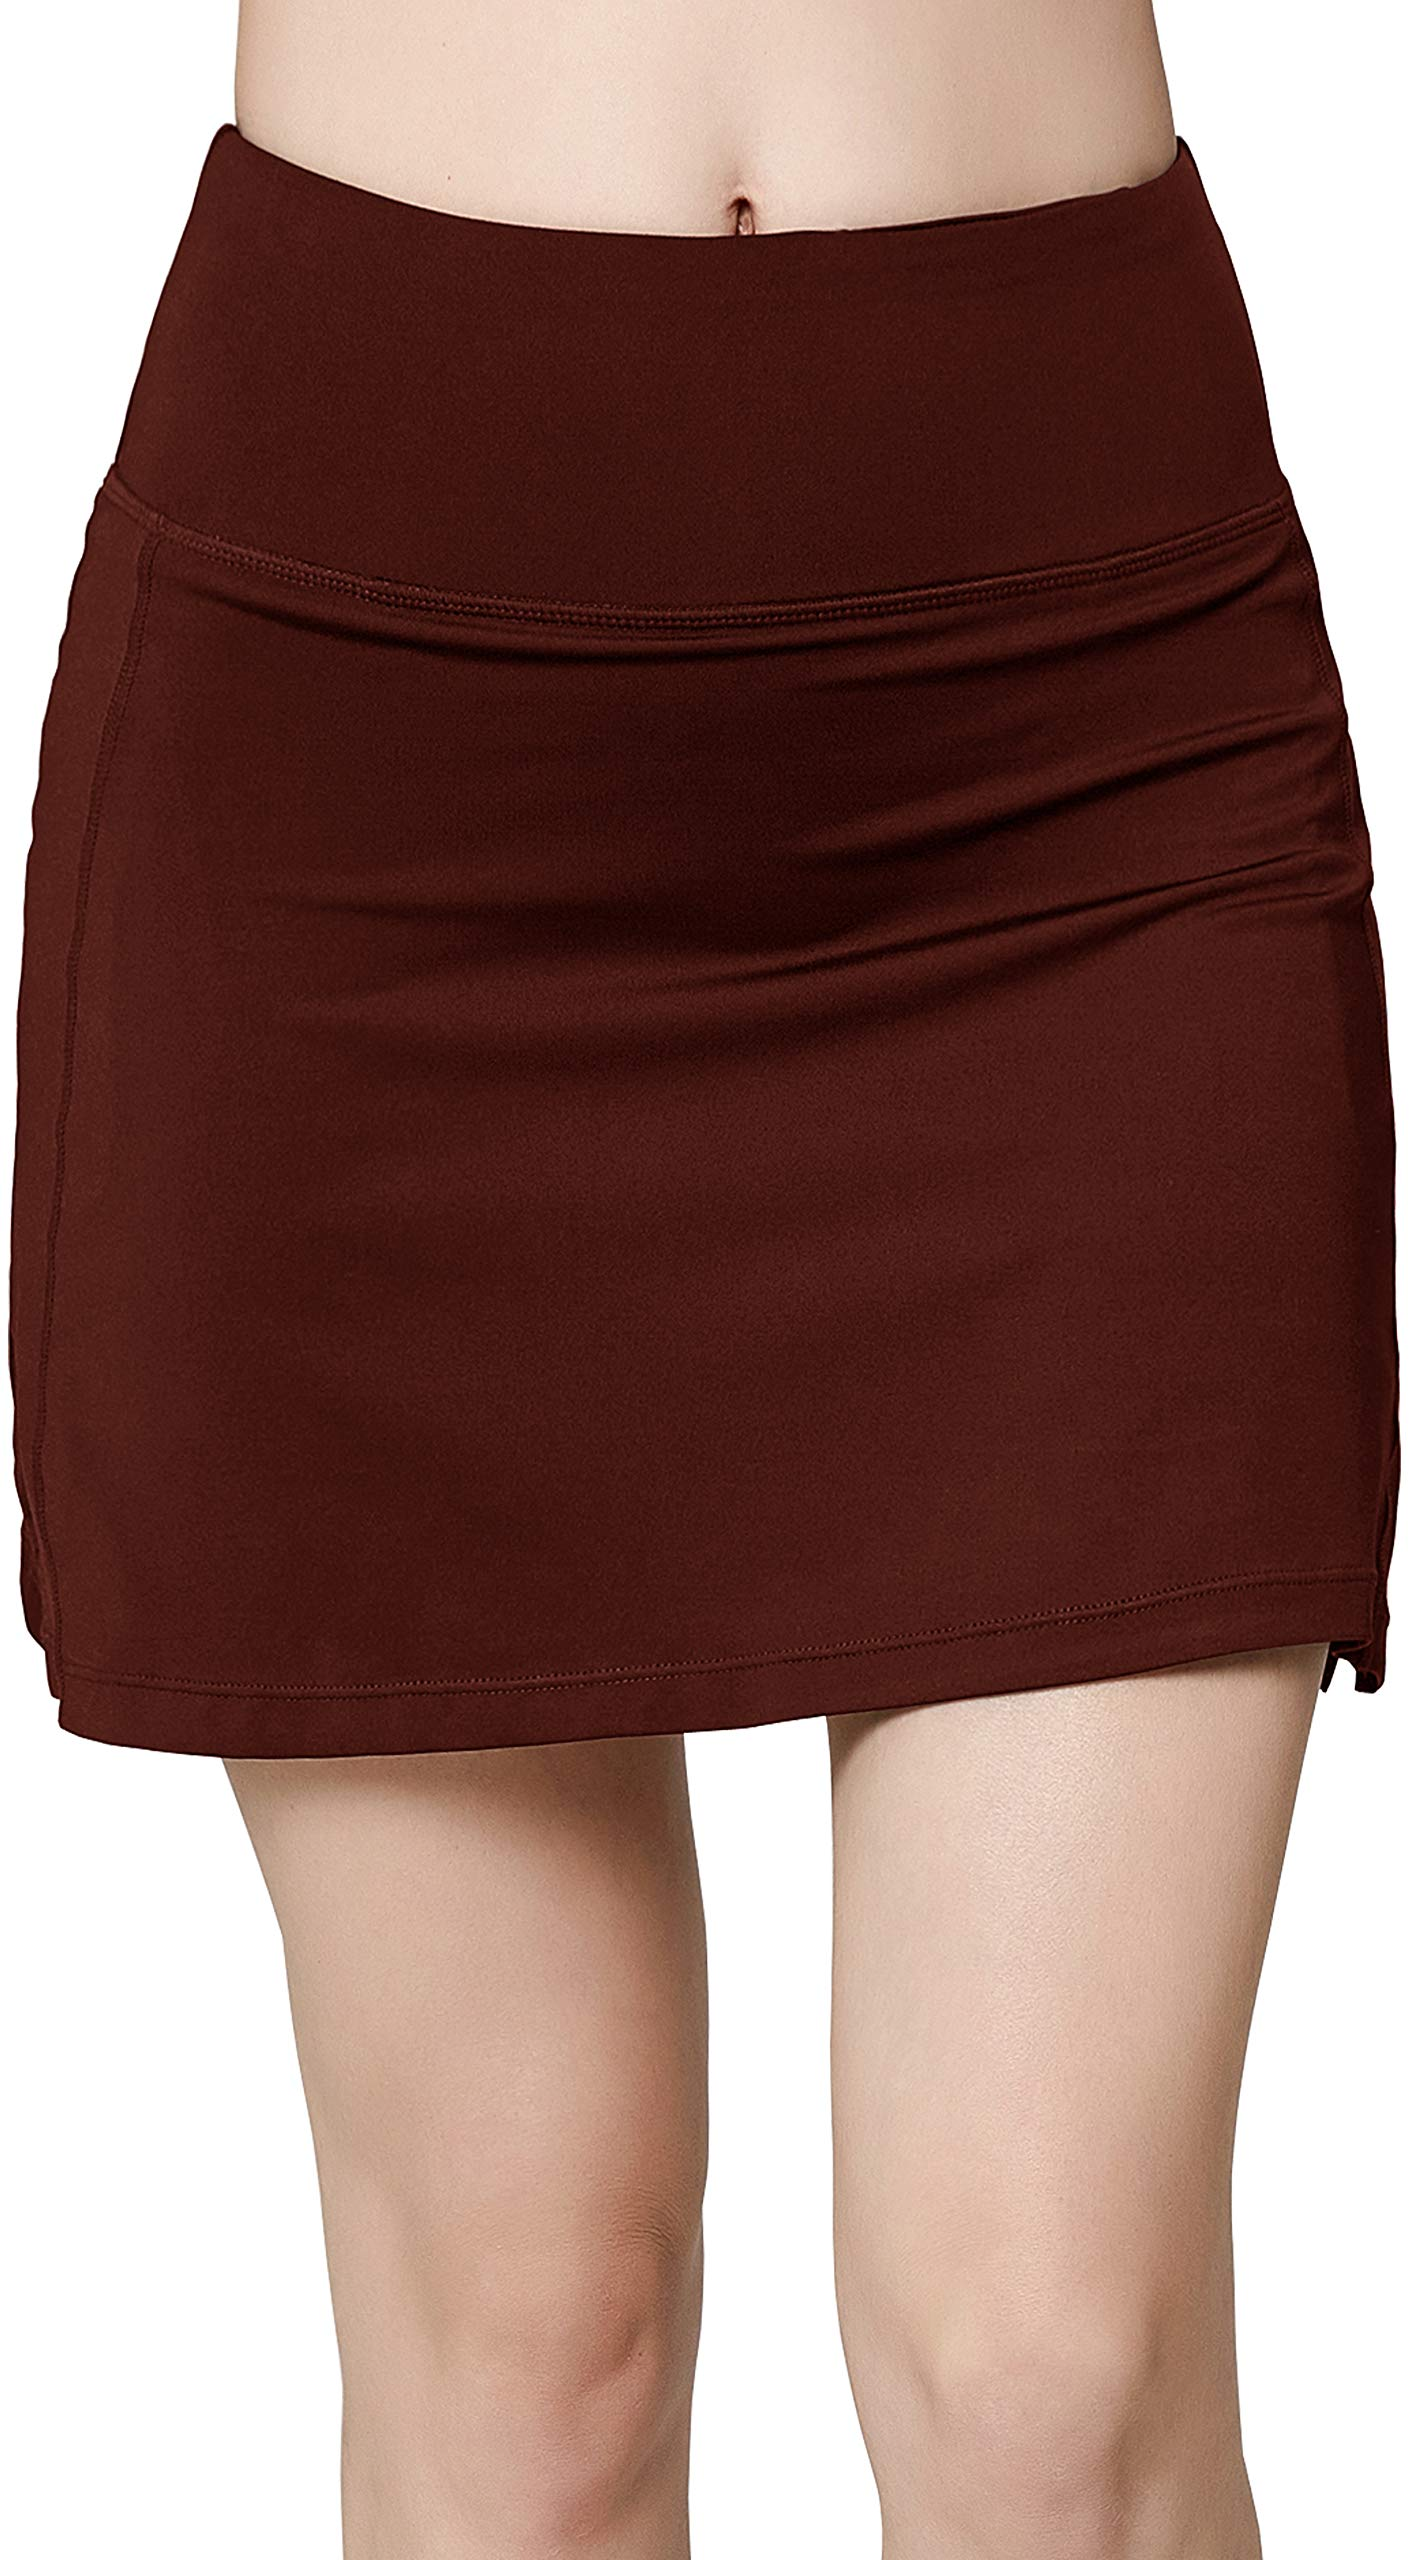 Women's Active Athletic Skirt Sports Golf Tennis Running Pockets Skort Brown XXL by Oalka